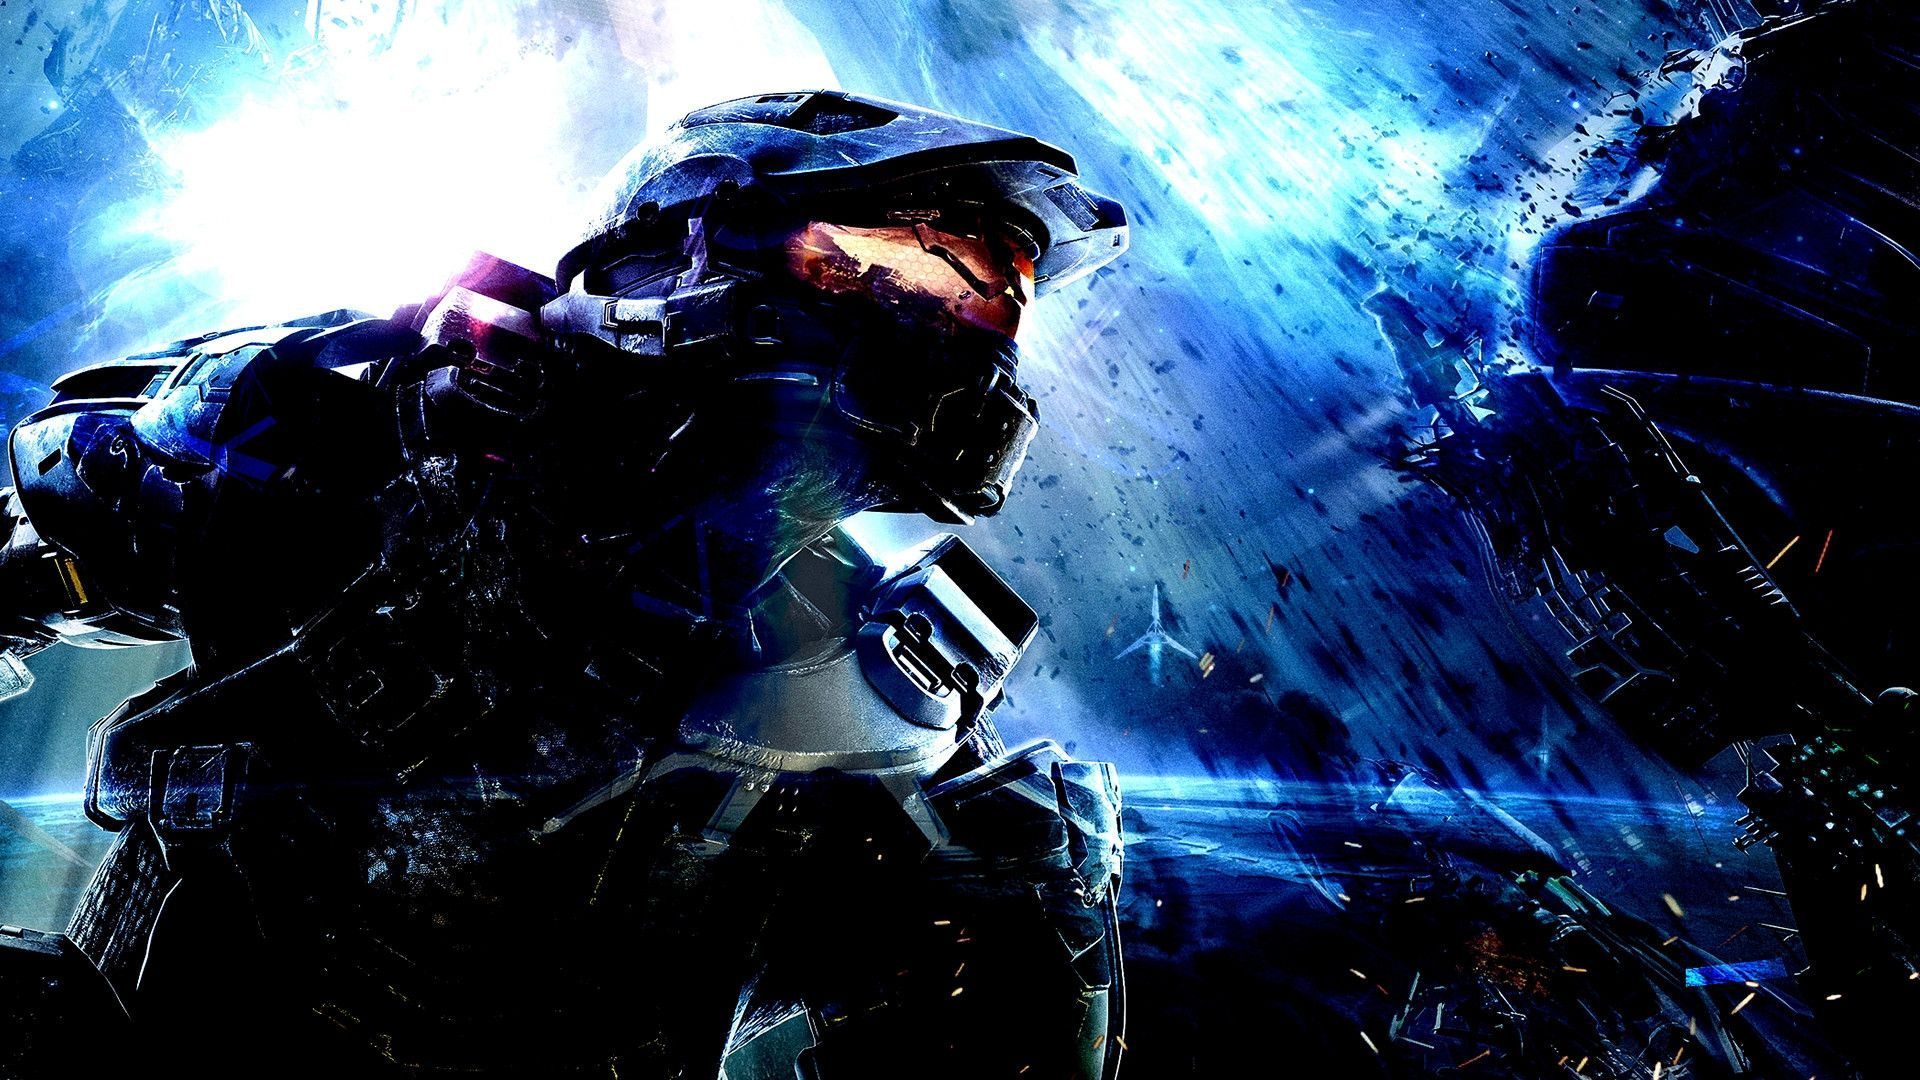 Halo 4 Wallpaper Awesome 34 Halo 4 Wallpapers HDQ Backgrounds 1920x1080